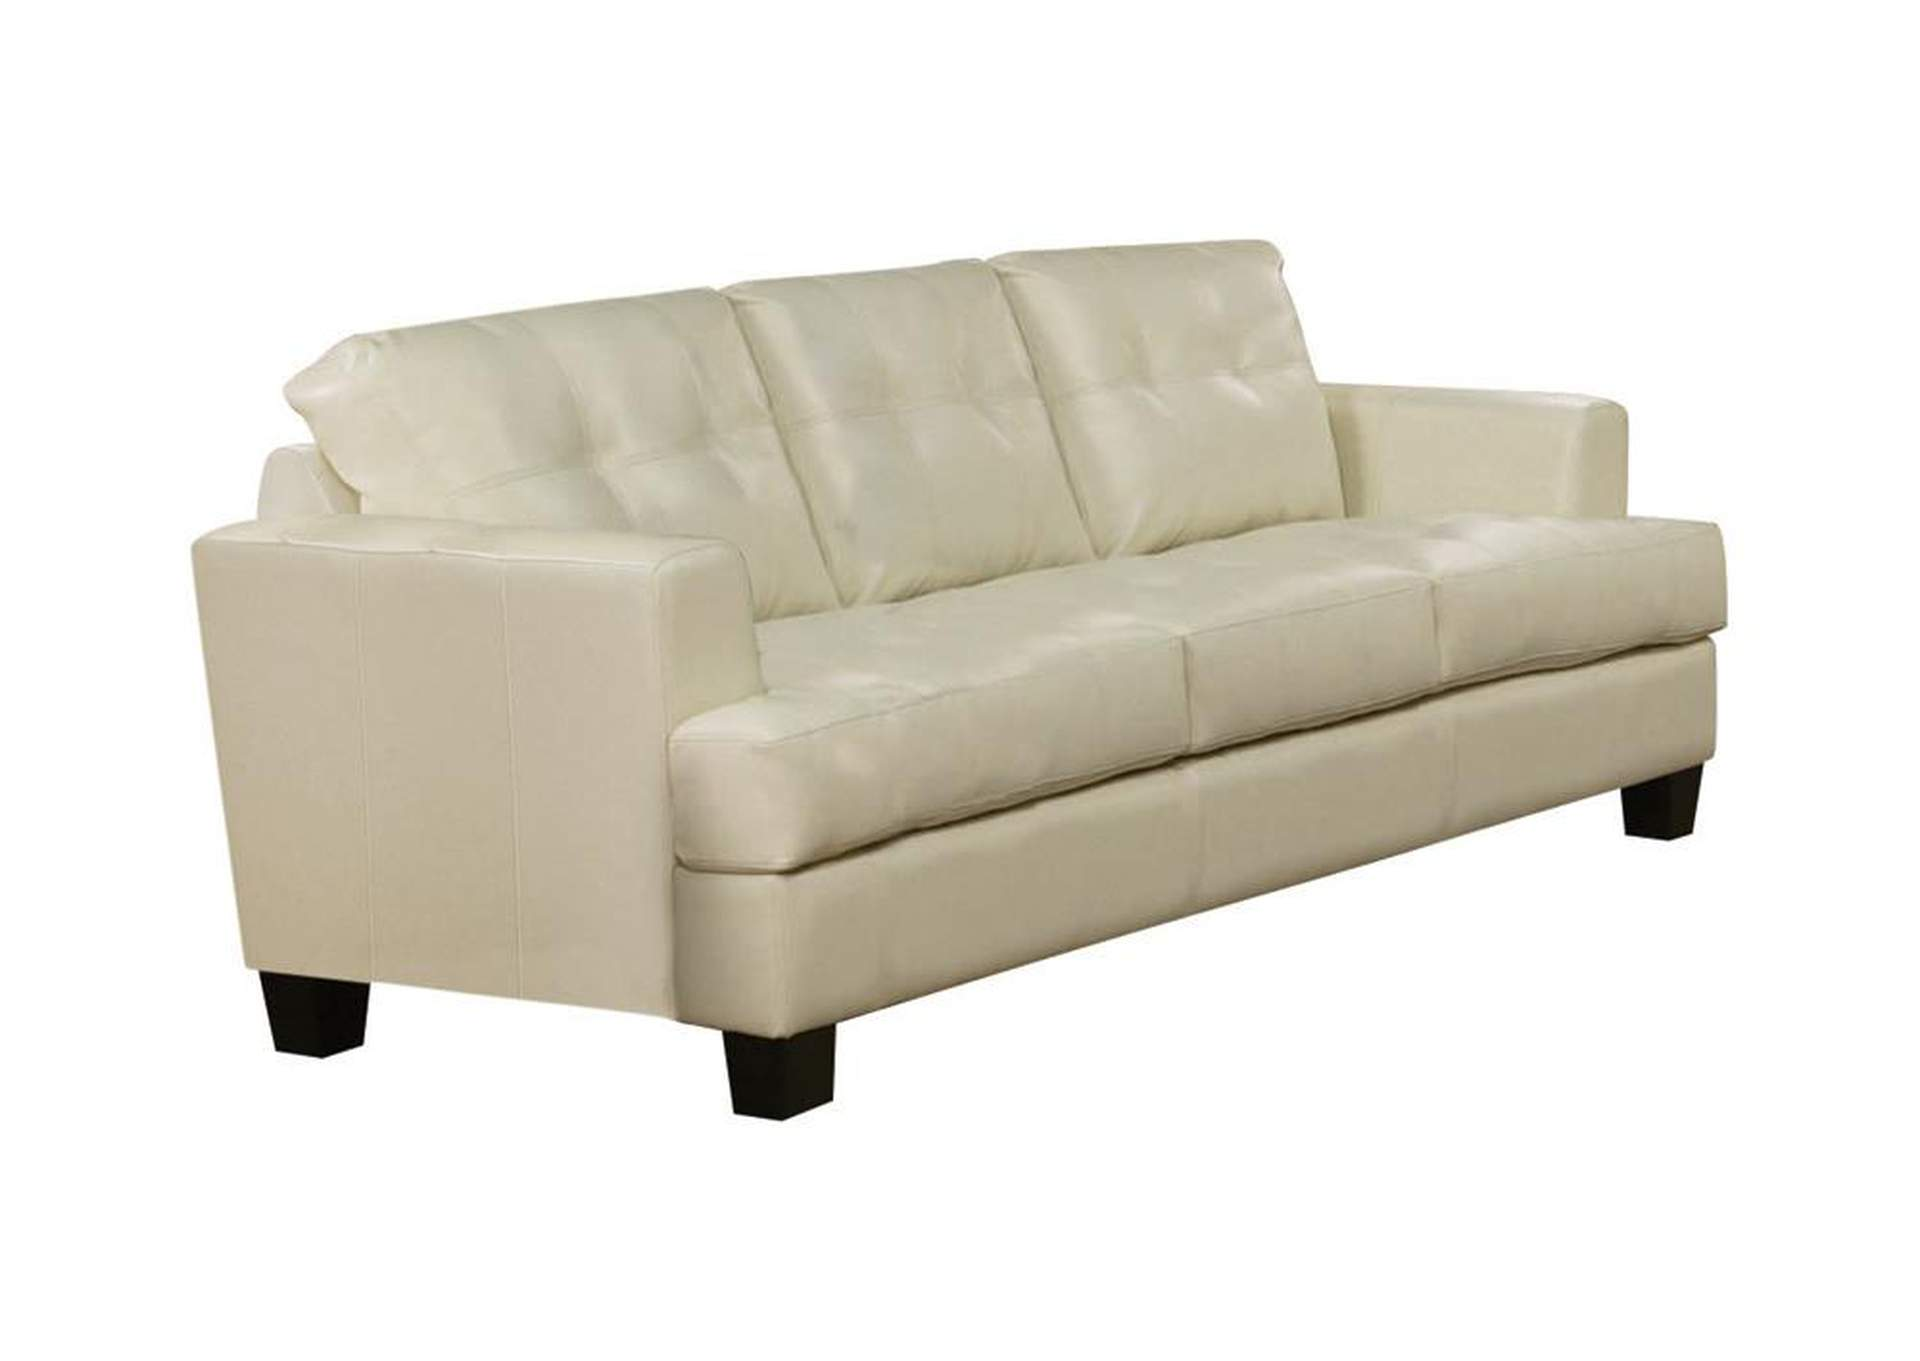 Cappuccino Samuel Cream Sofa,Coaster Furniture